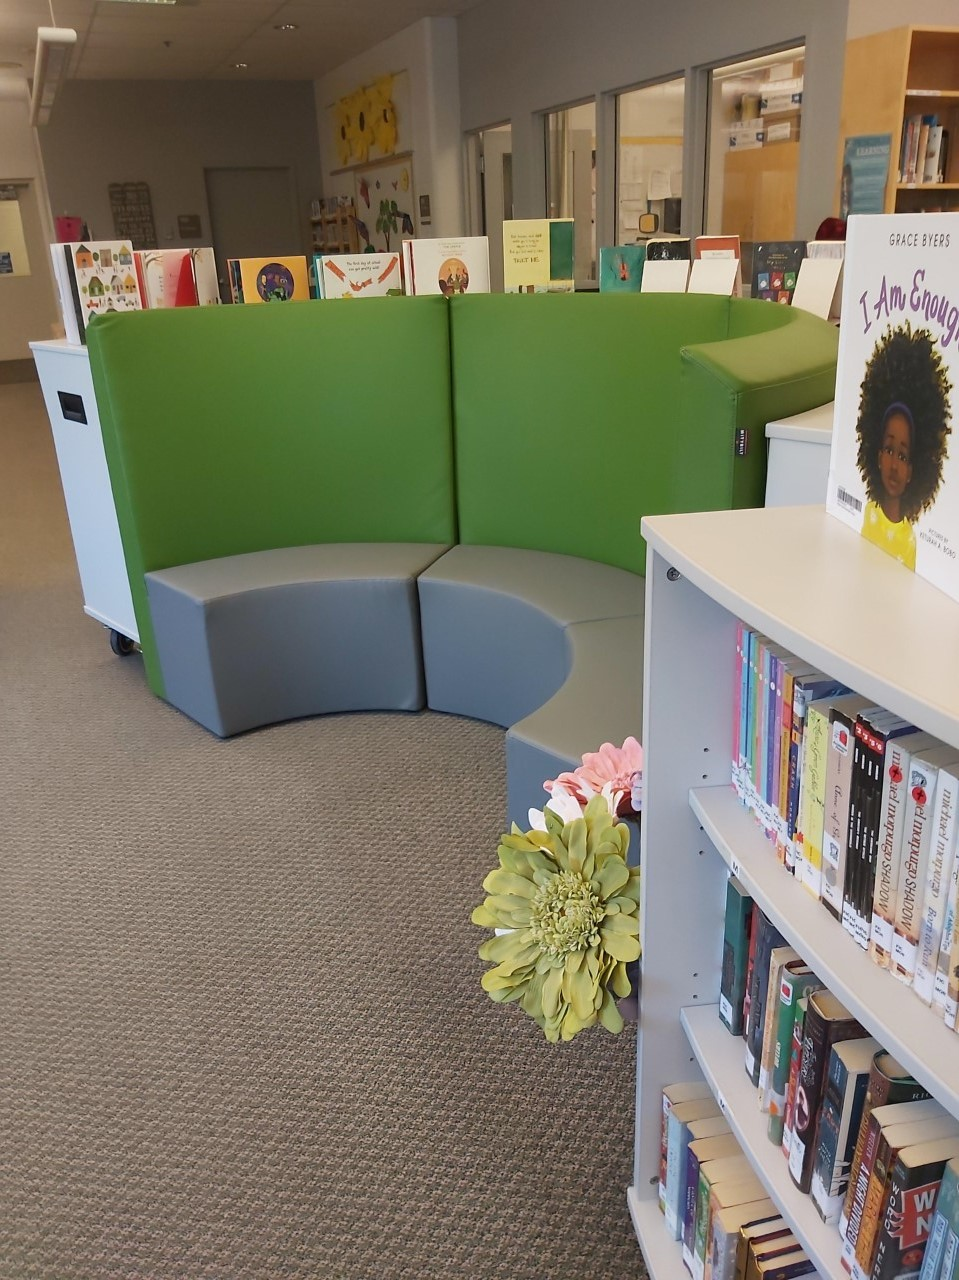 A new look for our library - thank you PAC for your generosity!